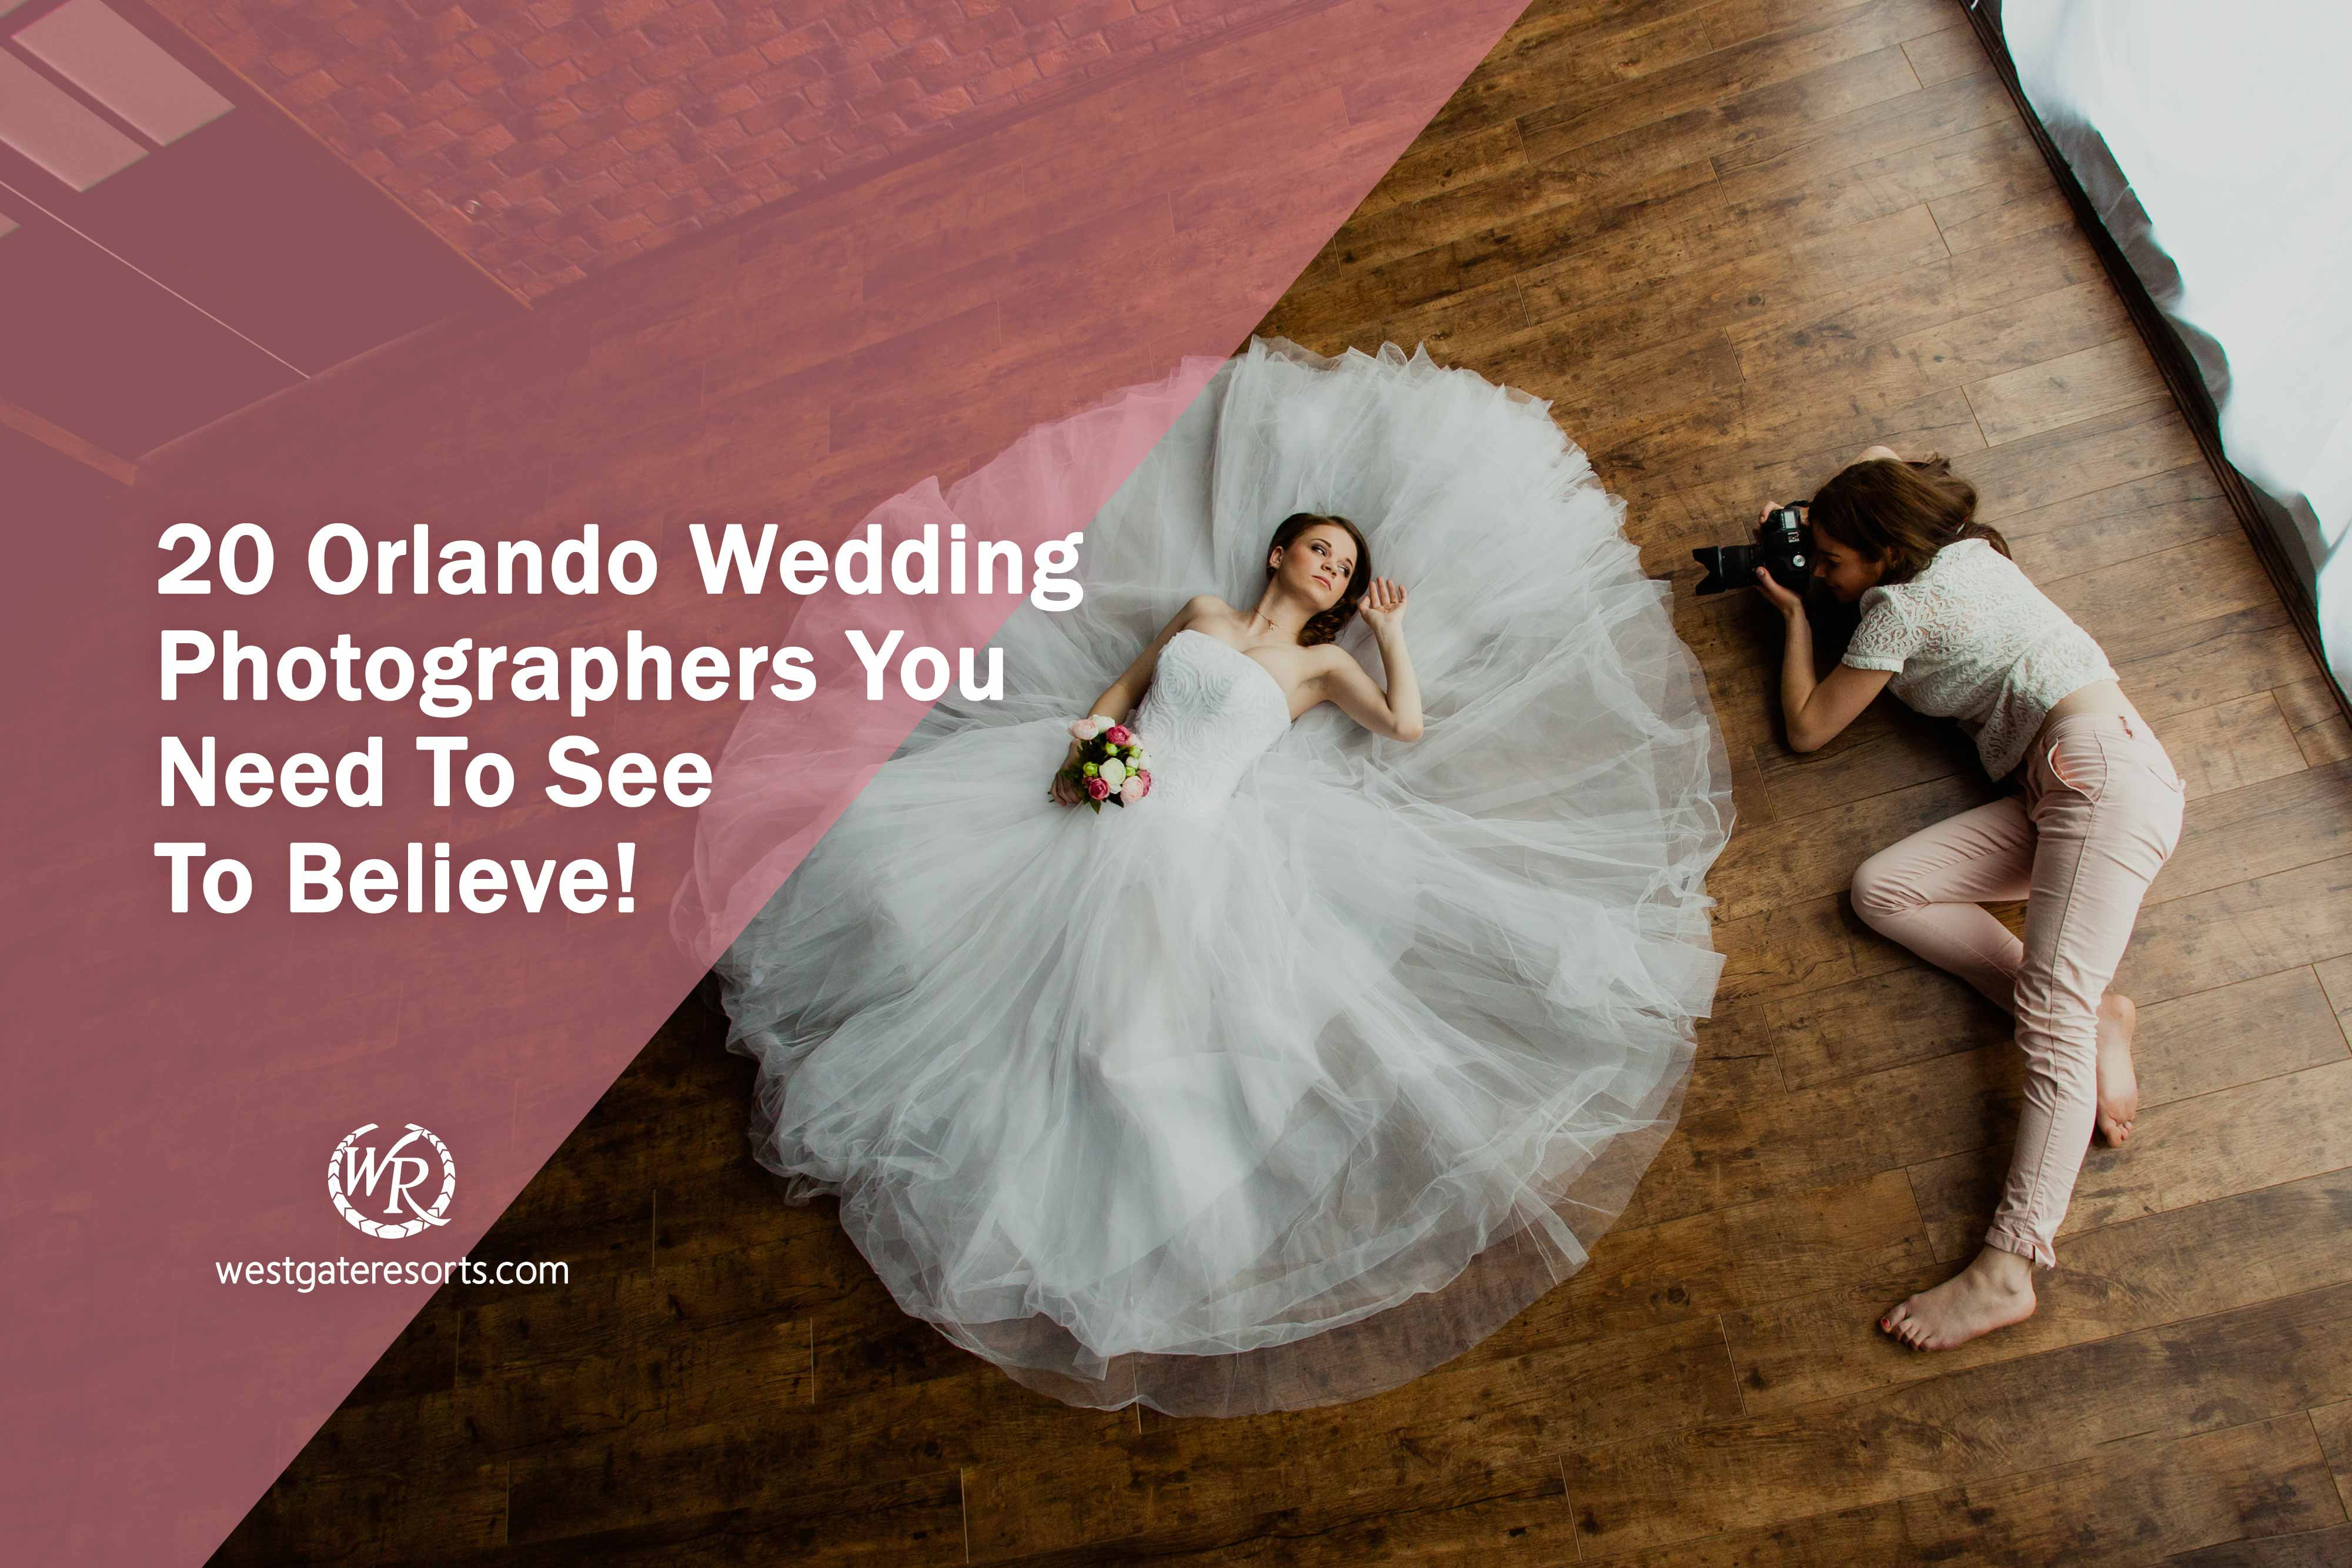 20 Orlando Wedding Photographers You Need To See To Believe!